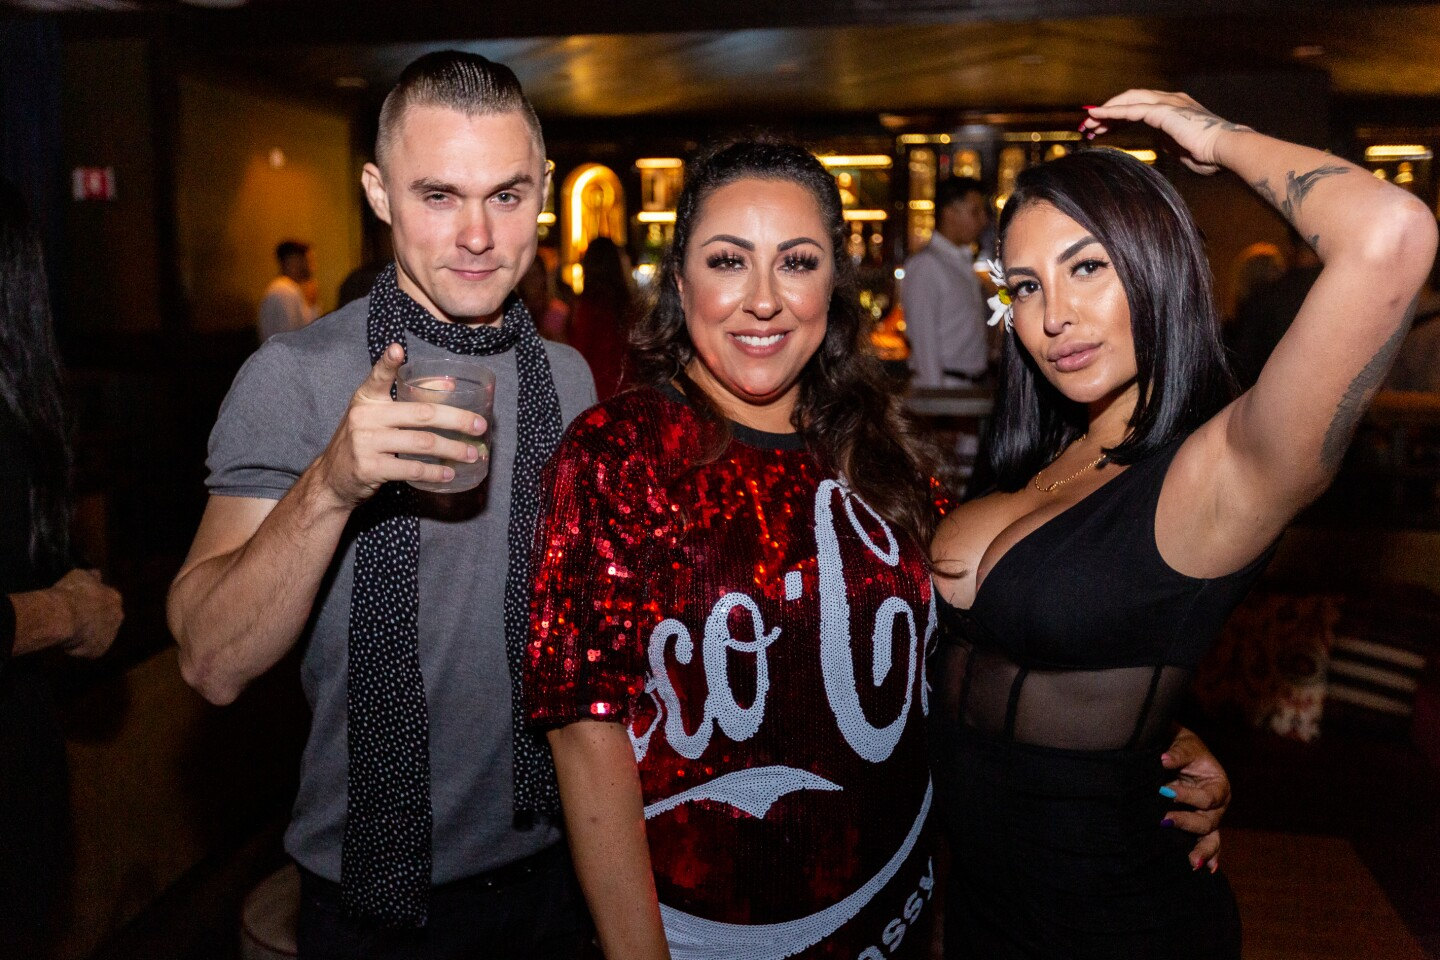 Your new favorite day of the week? Iconic Thursdays at Oxford Social Club. Photos from Oct. 3, 2019.